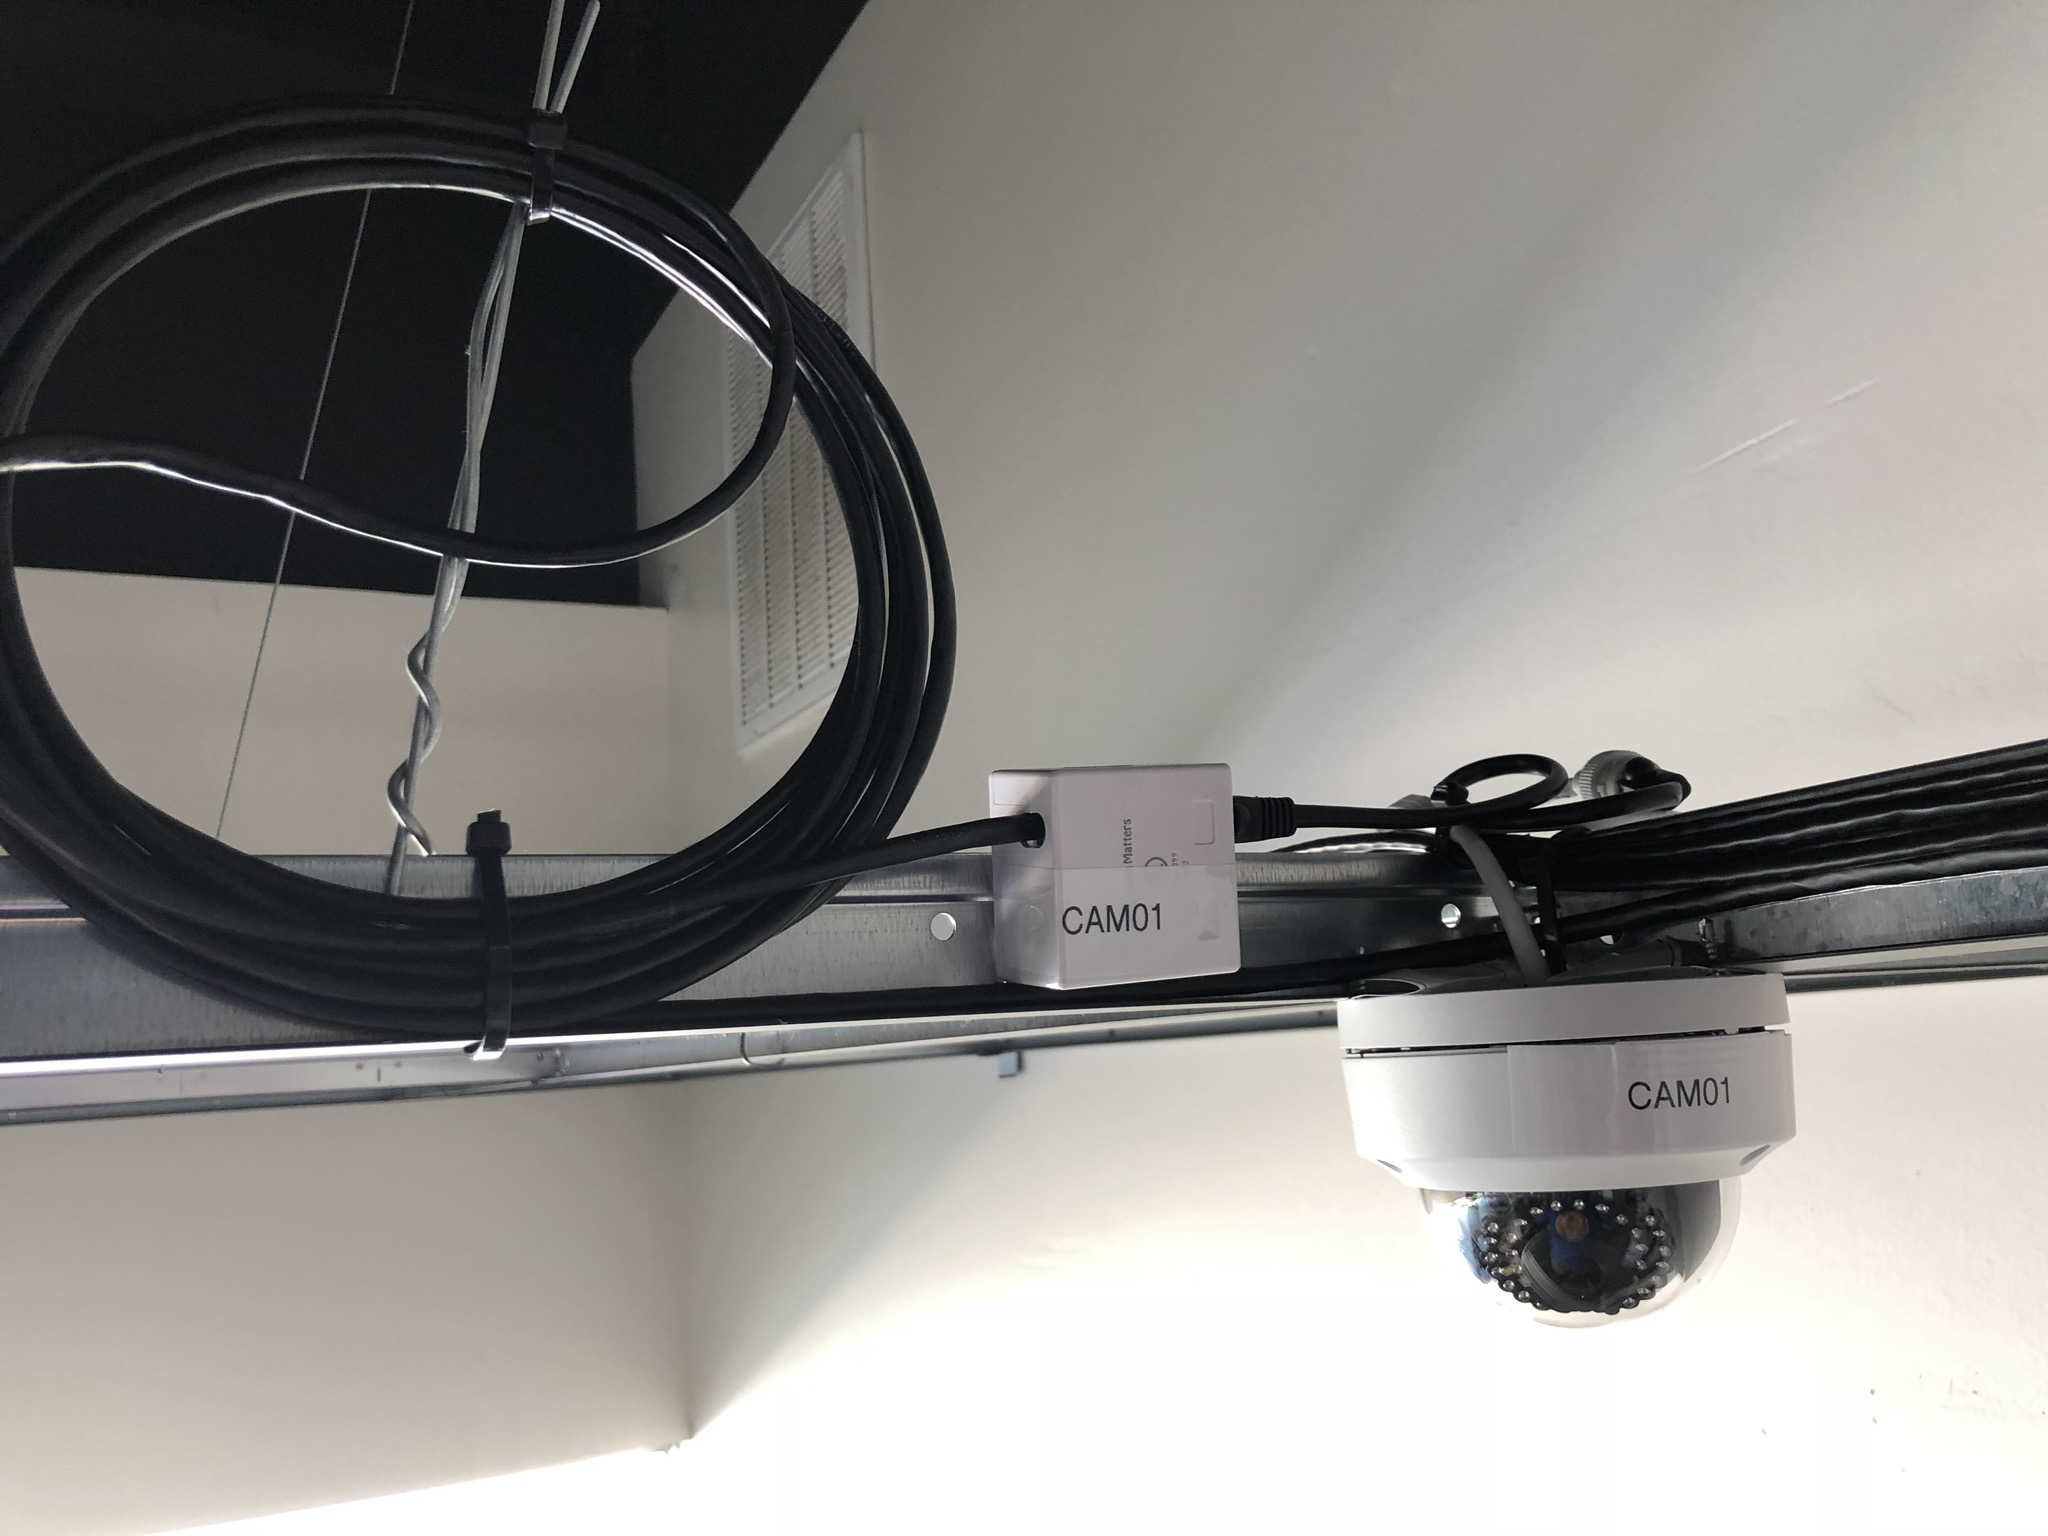 Surveillance Equipment and Camera networking and installation - retail